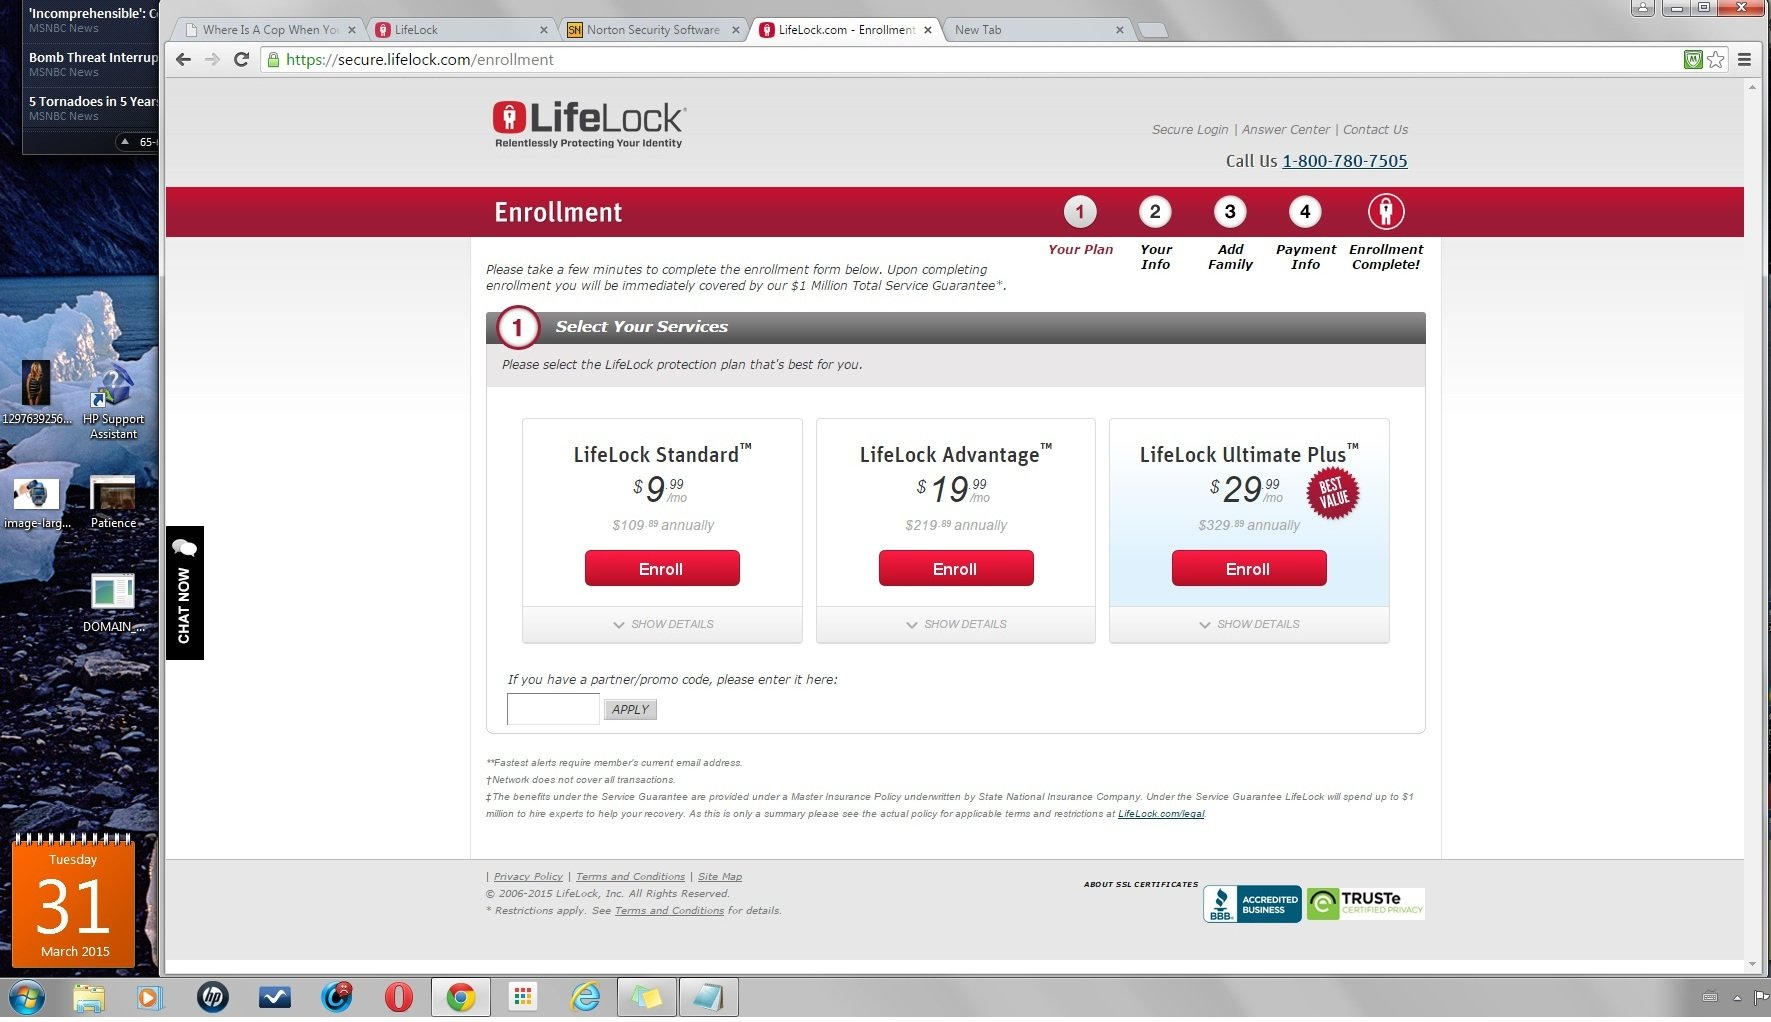 LifeLock Standard $9.99/Month LifeLock Advantage $19.99/Month LifeLock Ultimate Plus $29.99/Month